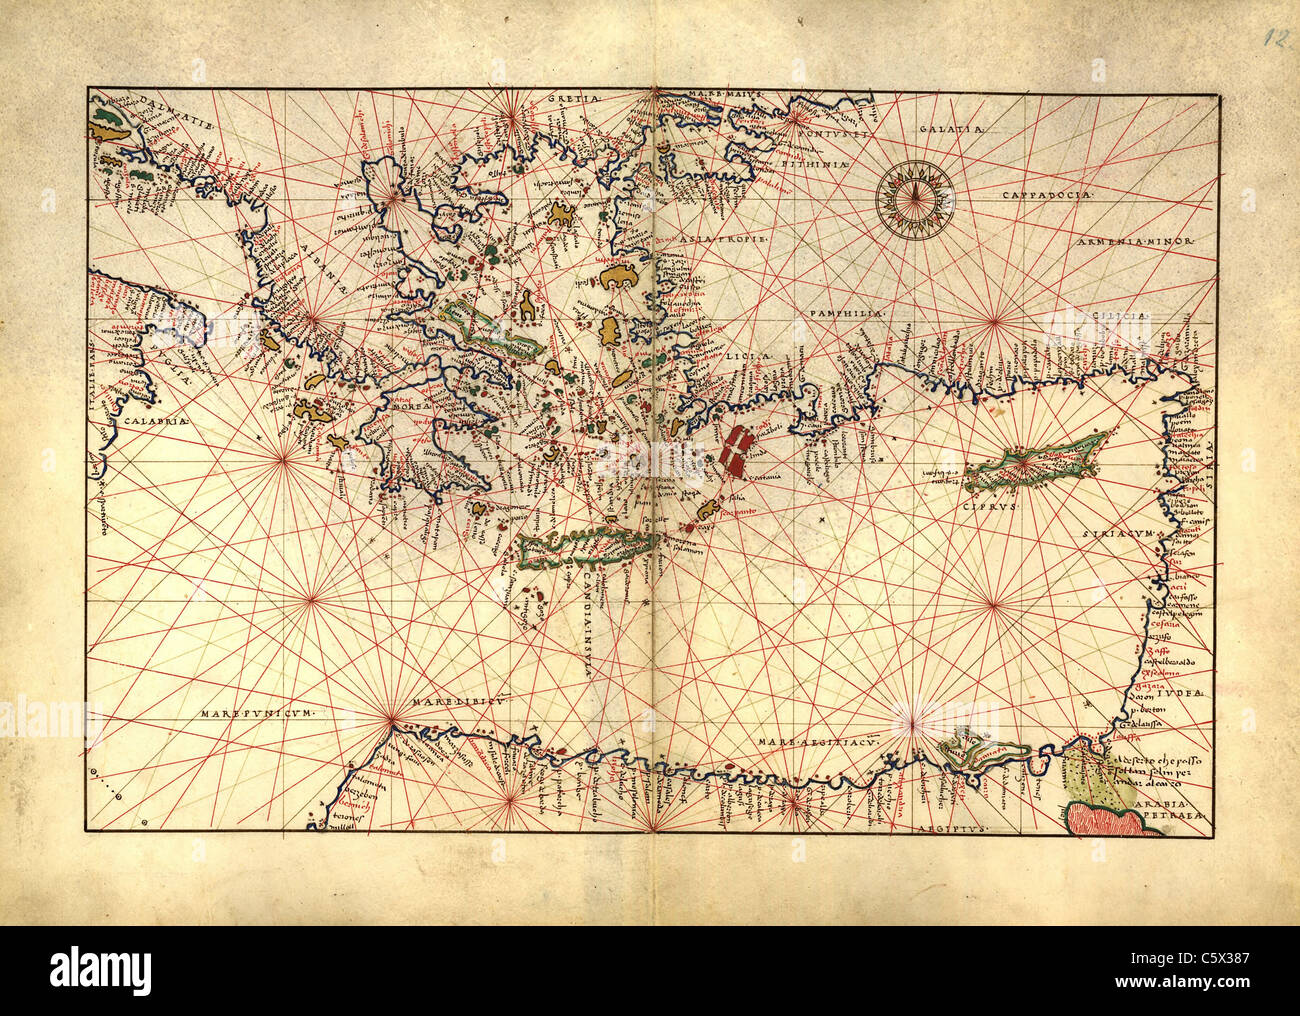 Eastern Mediterranean, Greece, Turkey - Antiquarian Map or Portolan Chart from 16th Century Portolan Atlas Stock Photo